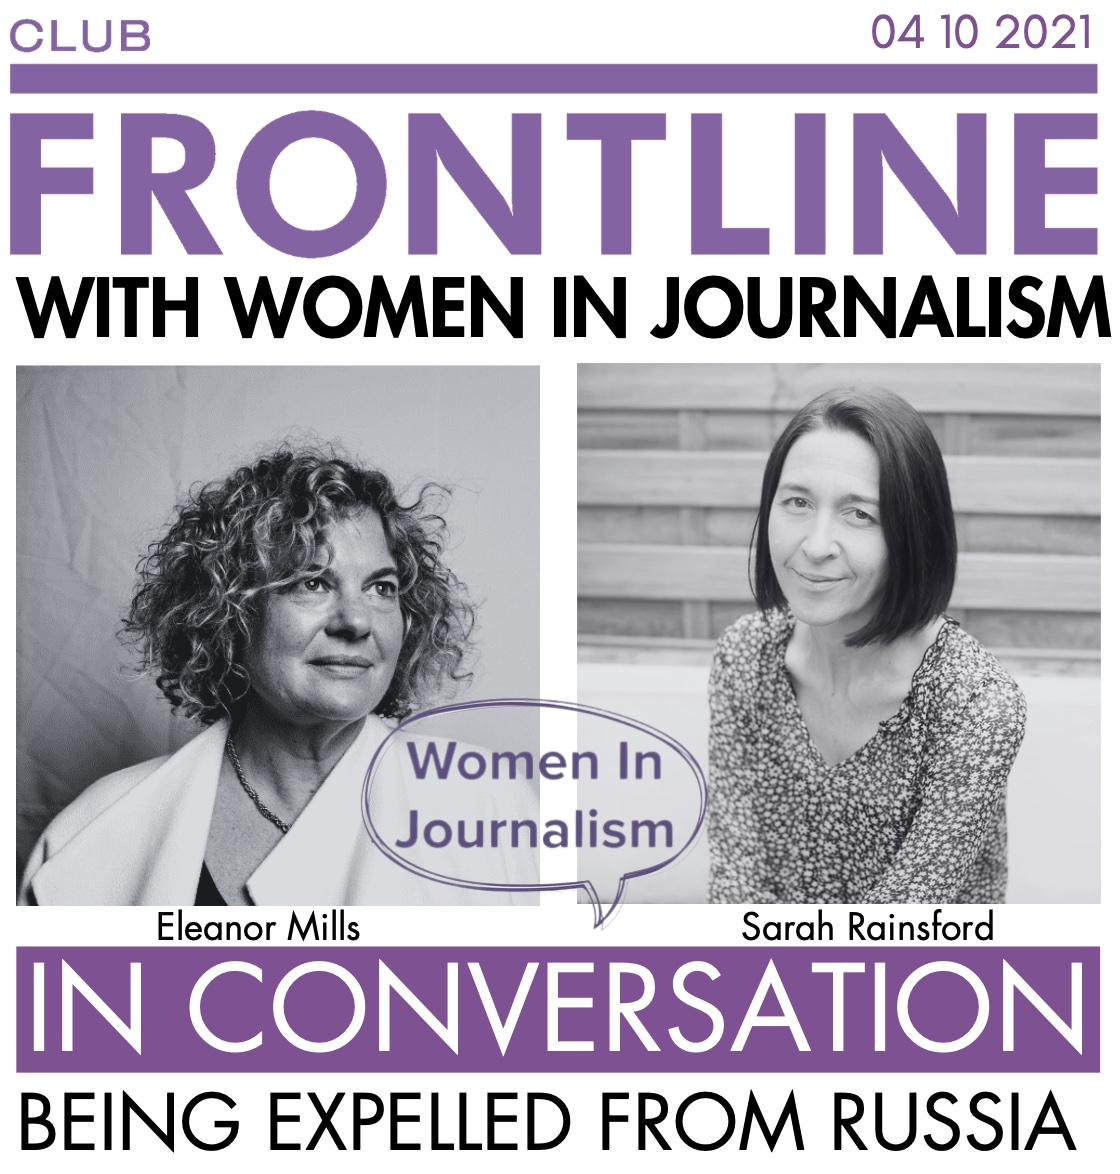 October 4:  Sarah Rainsford:' In conversation '. Being expelled from Russia – a Women in Journalism and Frontline Club event